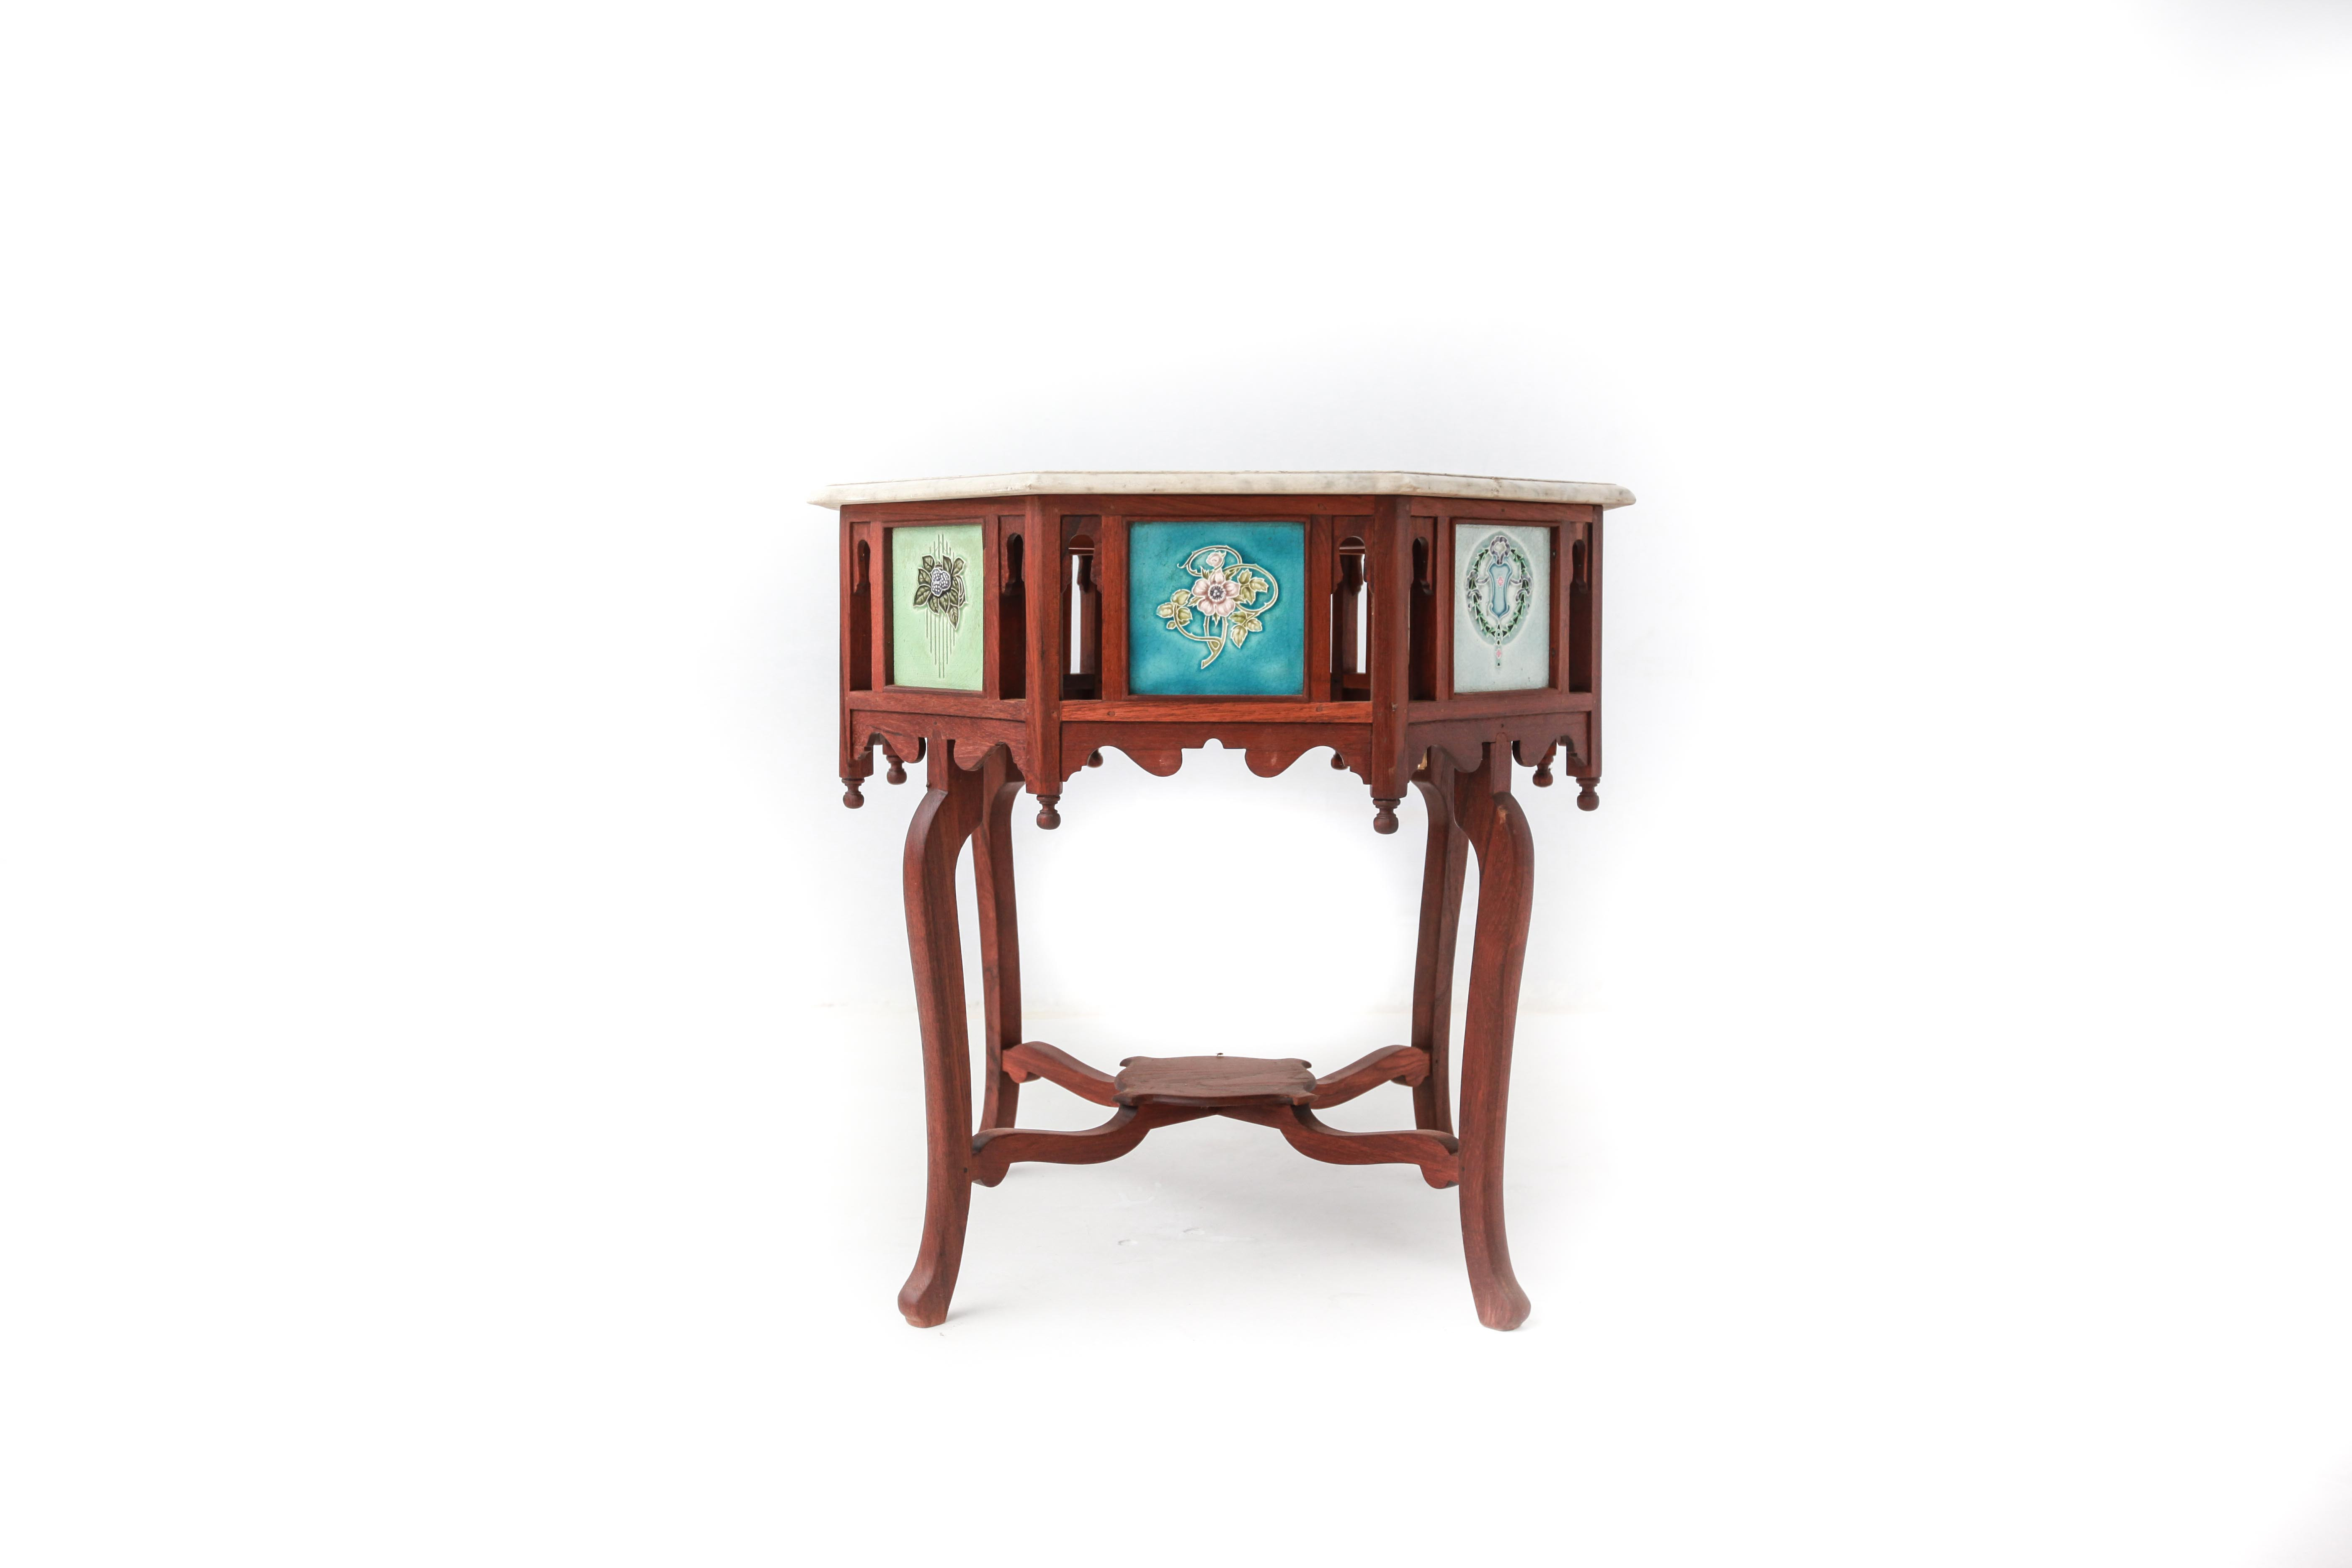 This pair of large burmese arm chairs is no longer available - Octagonal Marble Top Table In Burmese Teak With Ceramic Tiles